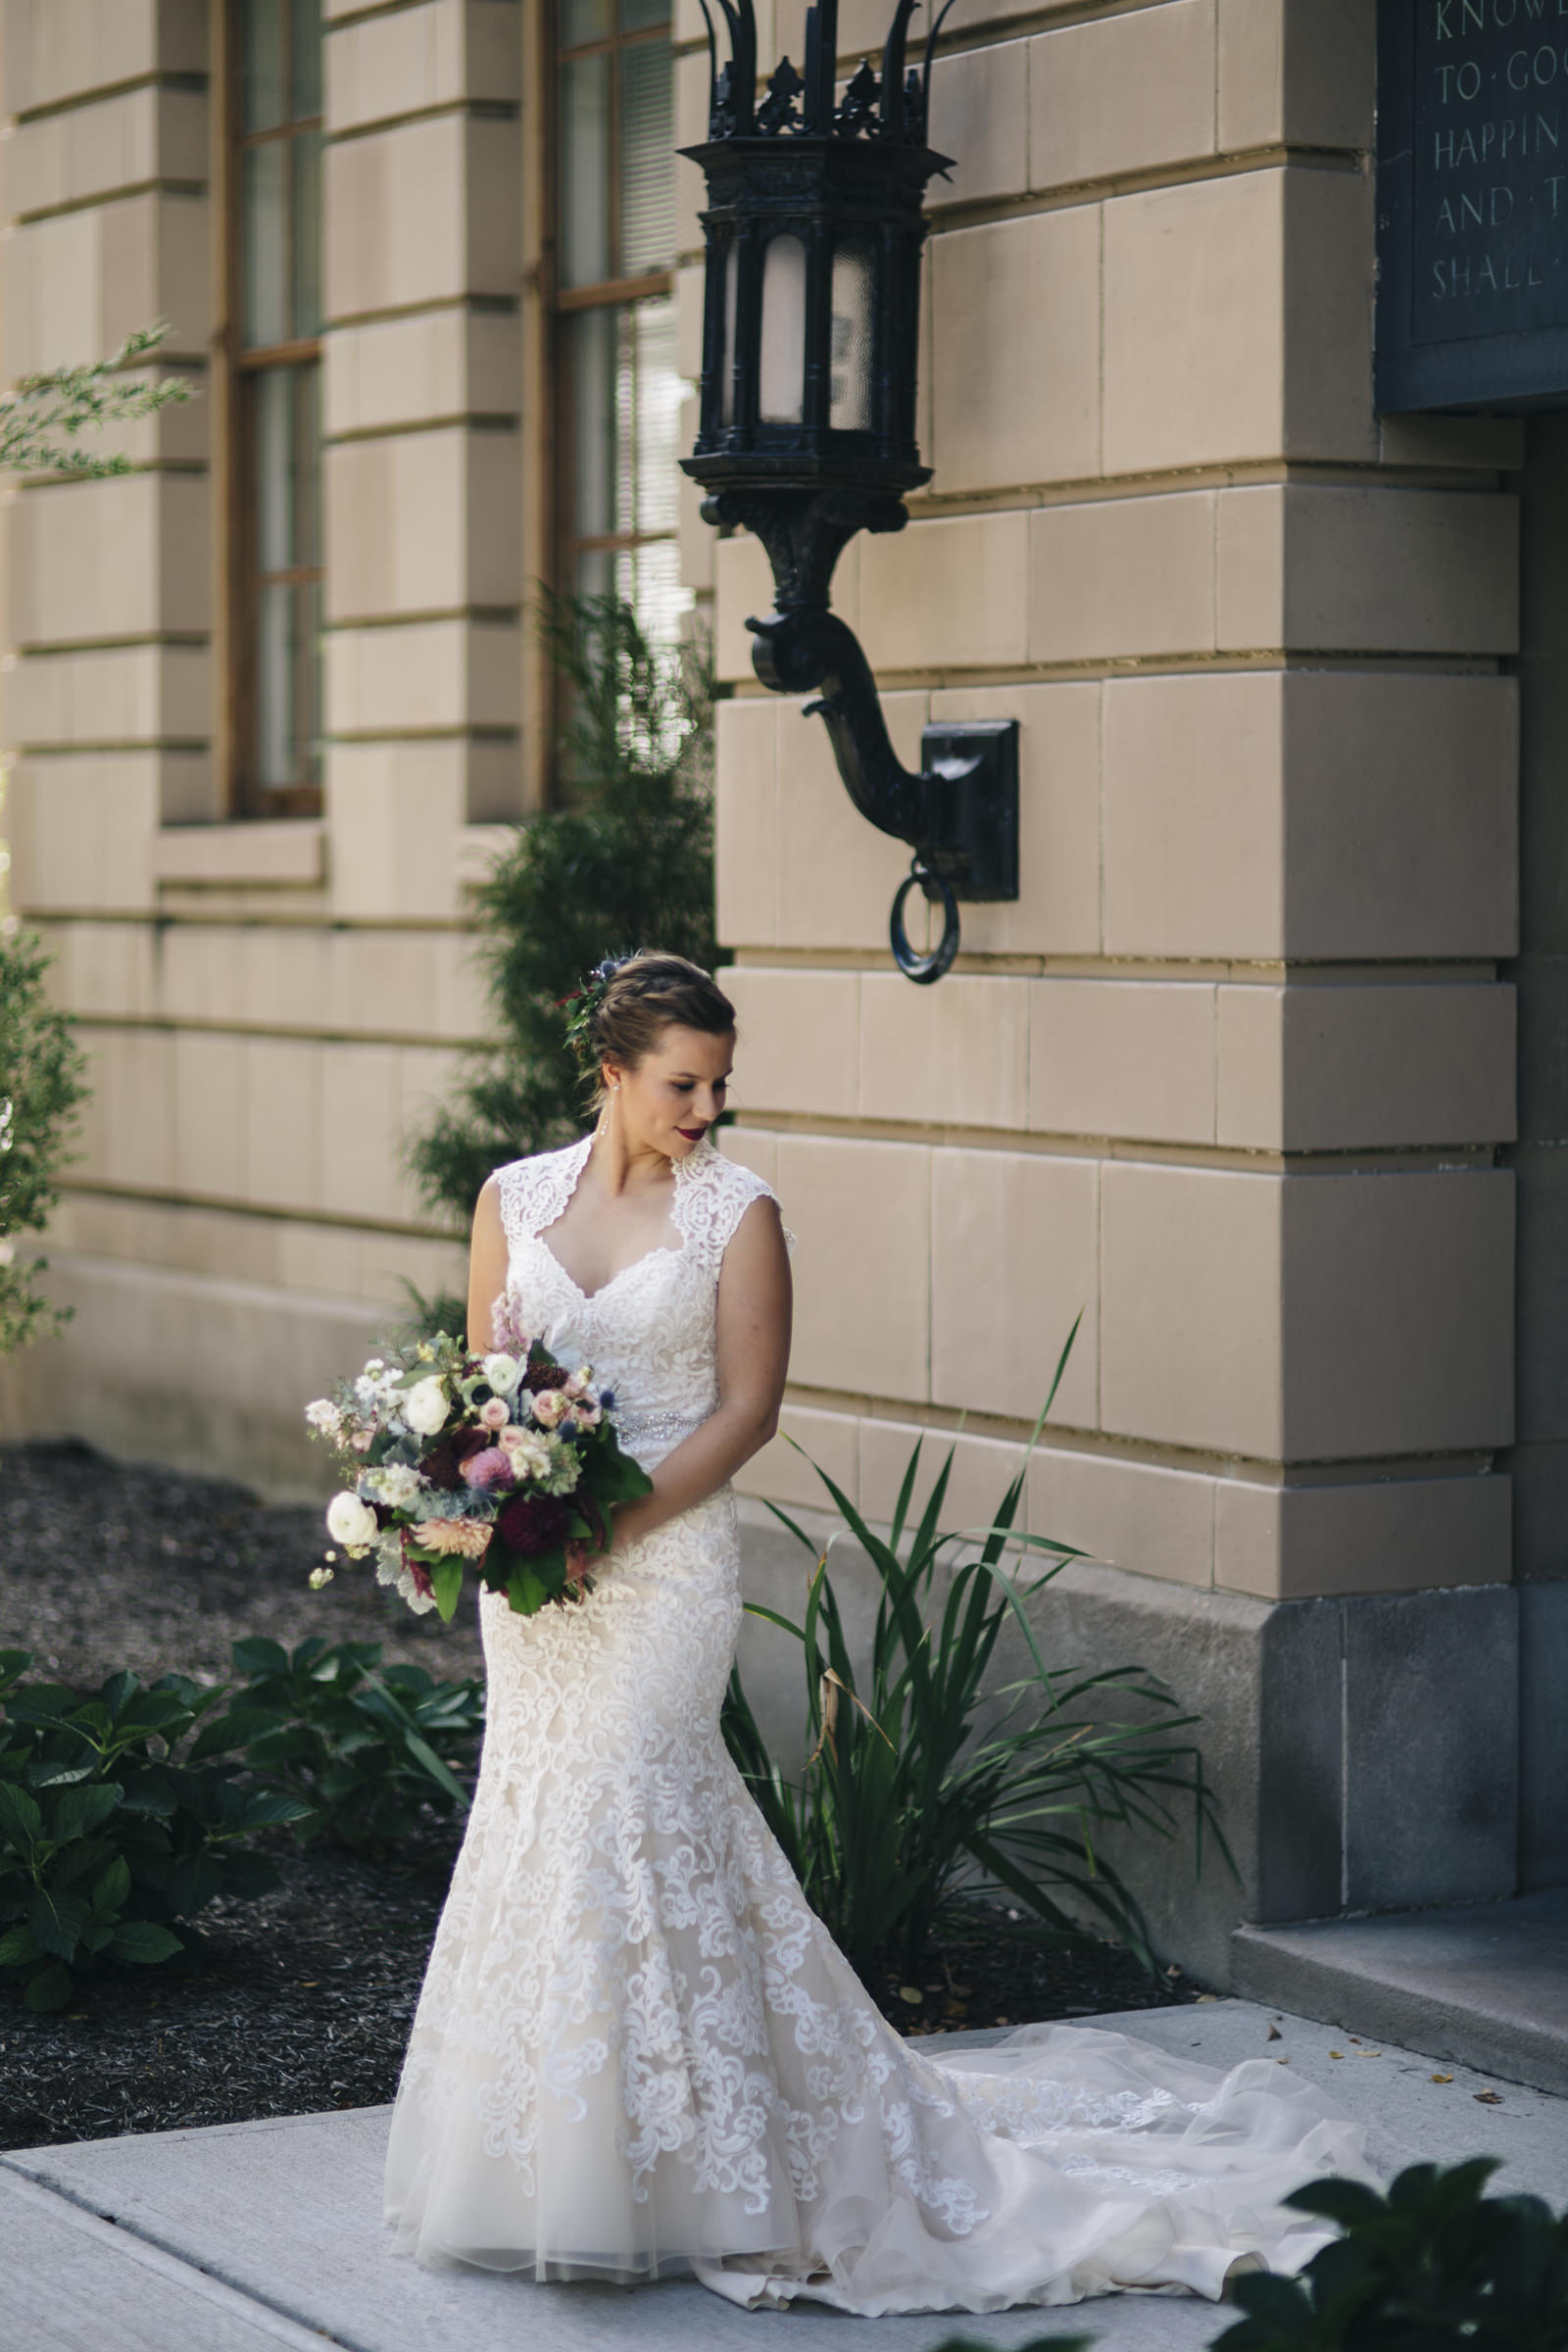 The bride stands out in front of the Admin Building on BGSU's campus